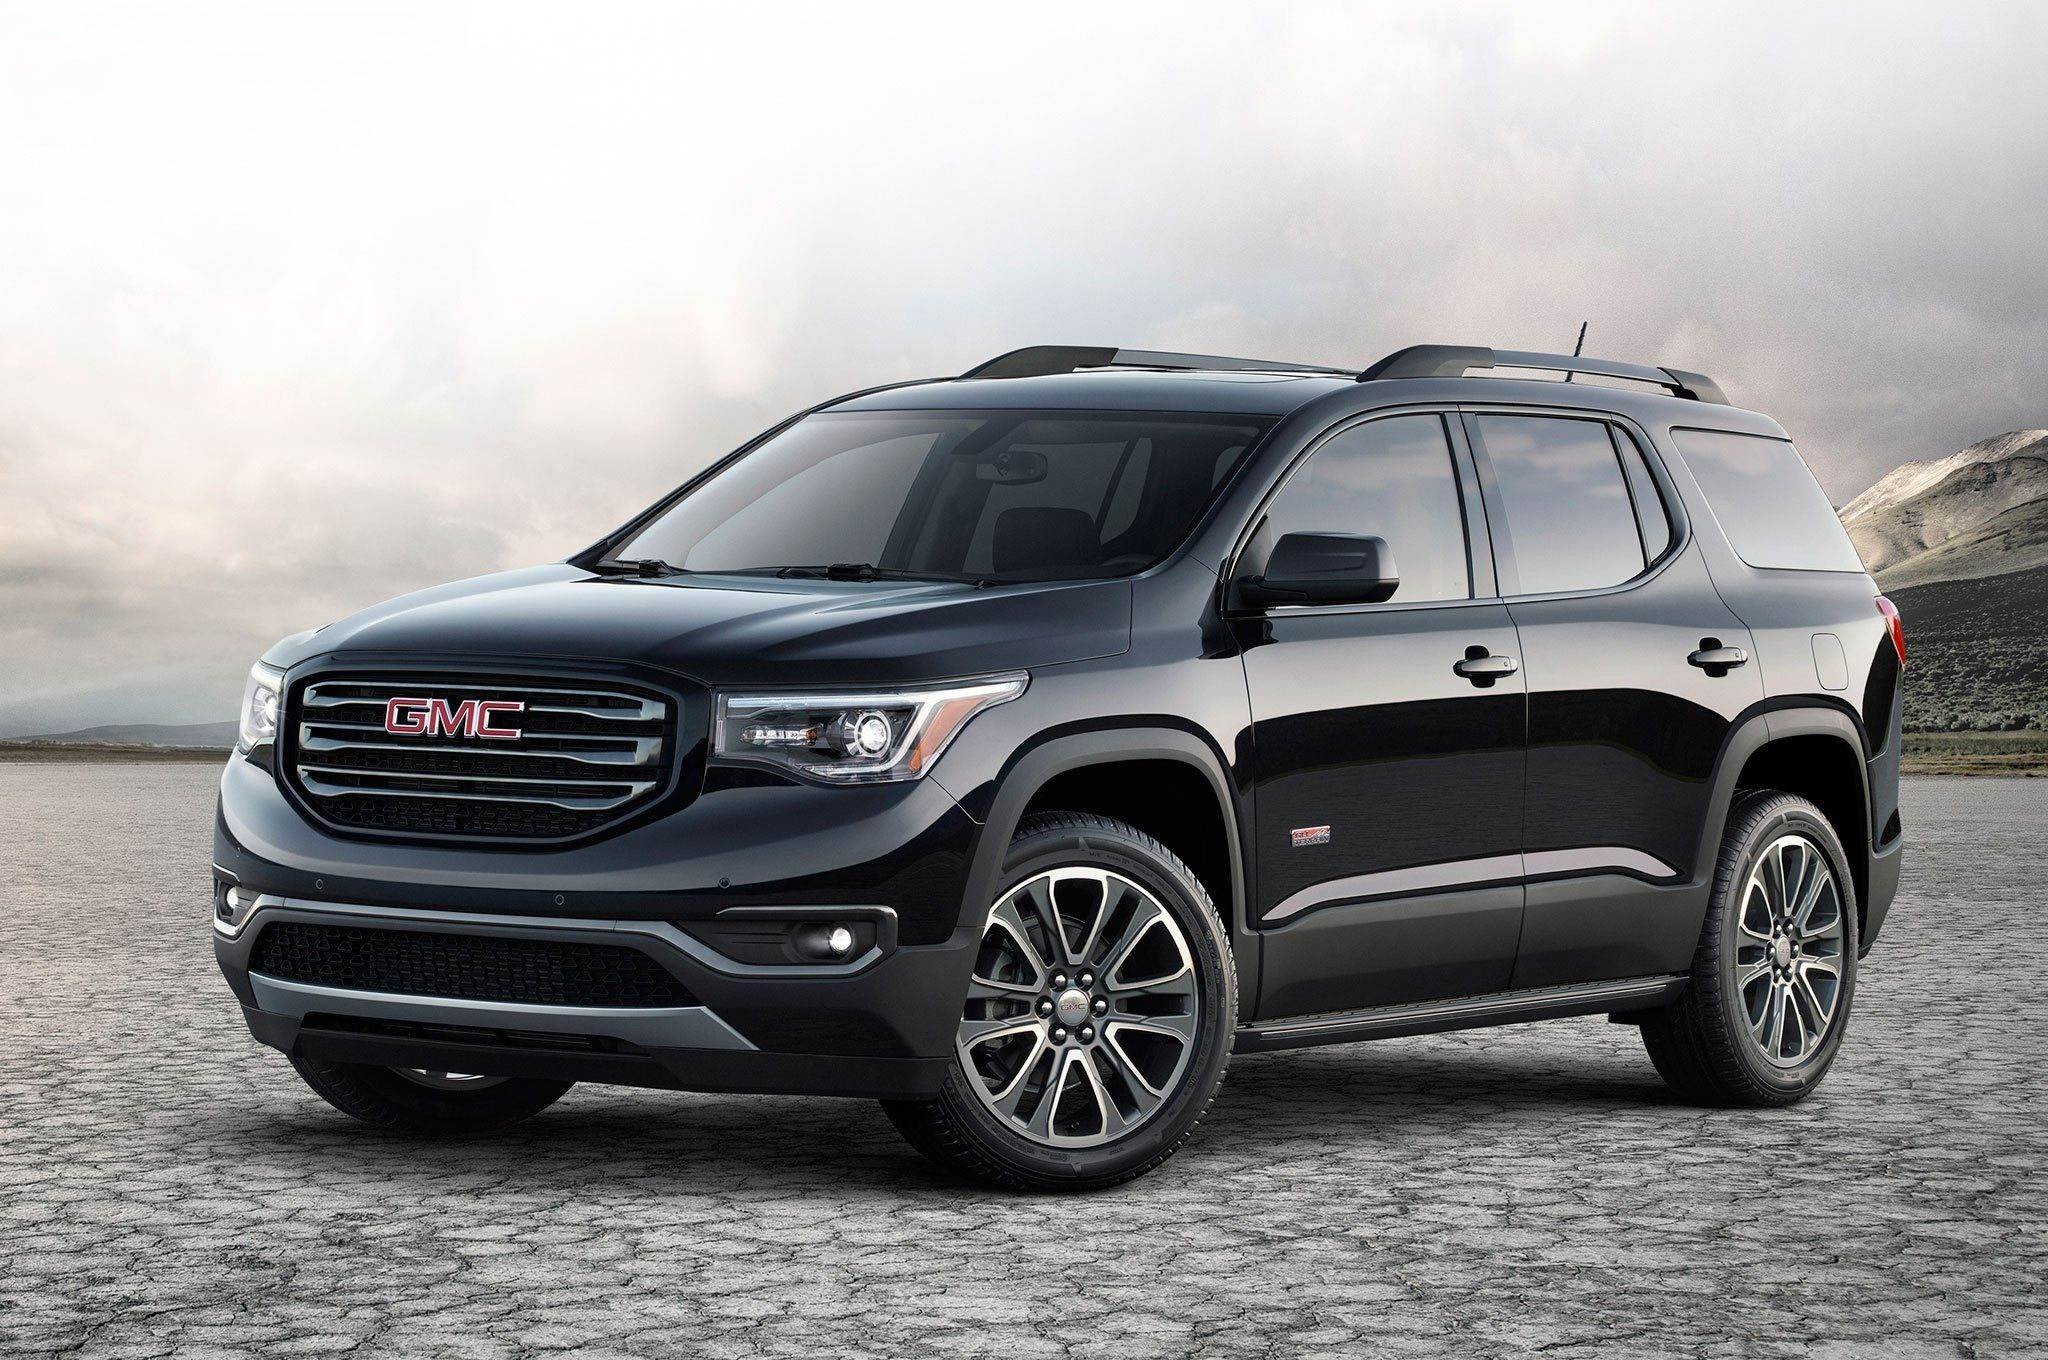 2020 Gmc Envoy Car Specs 2019 Picture Release Date And Review